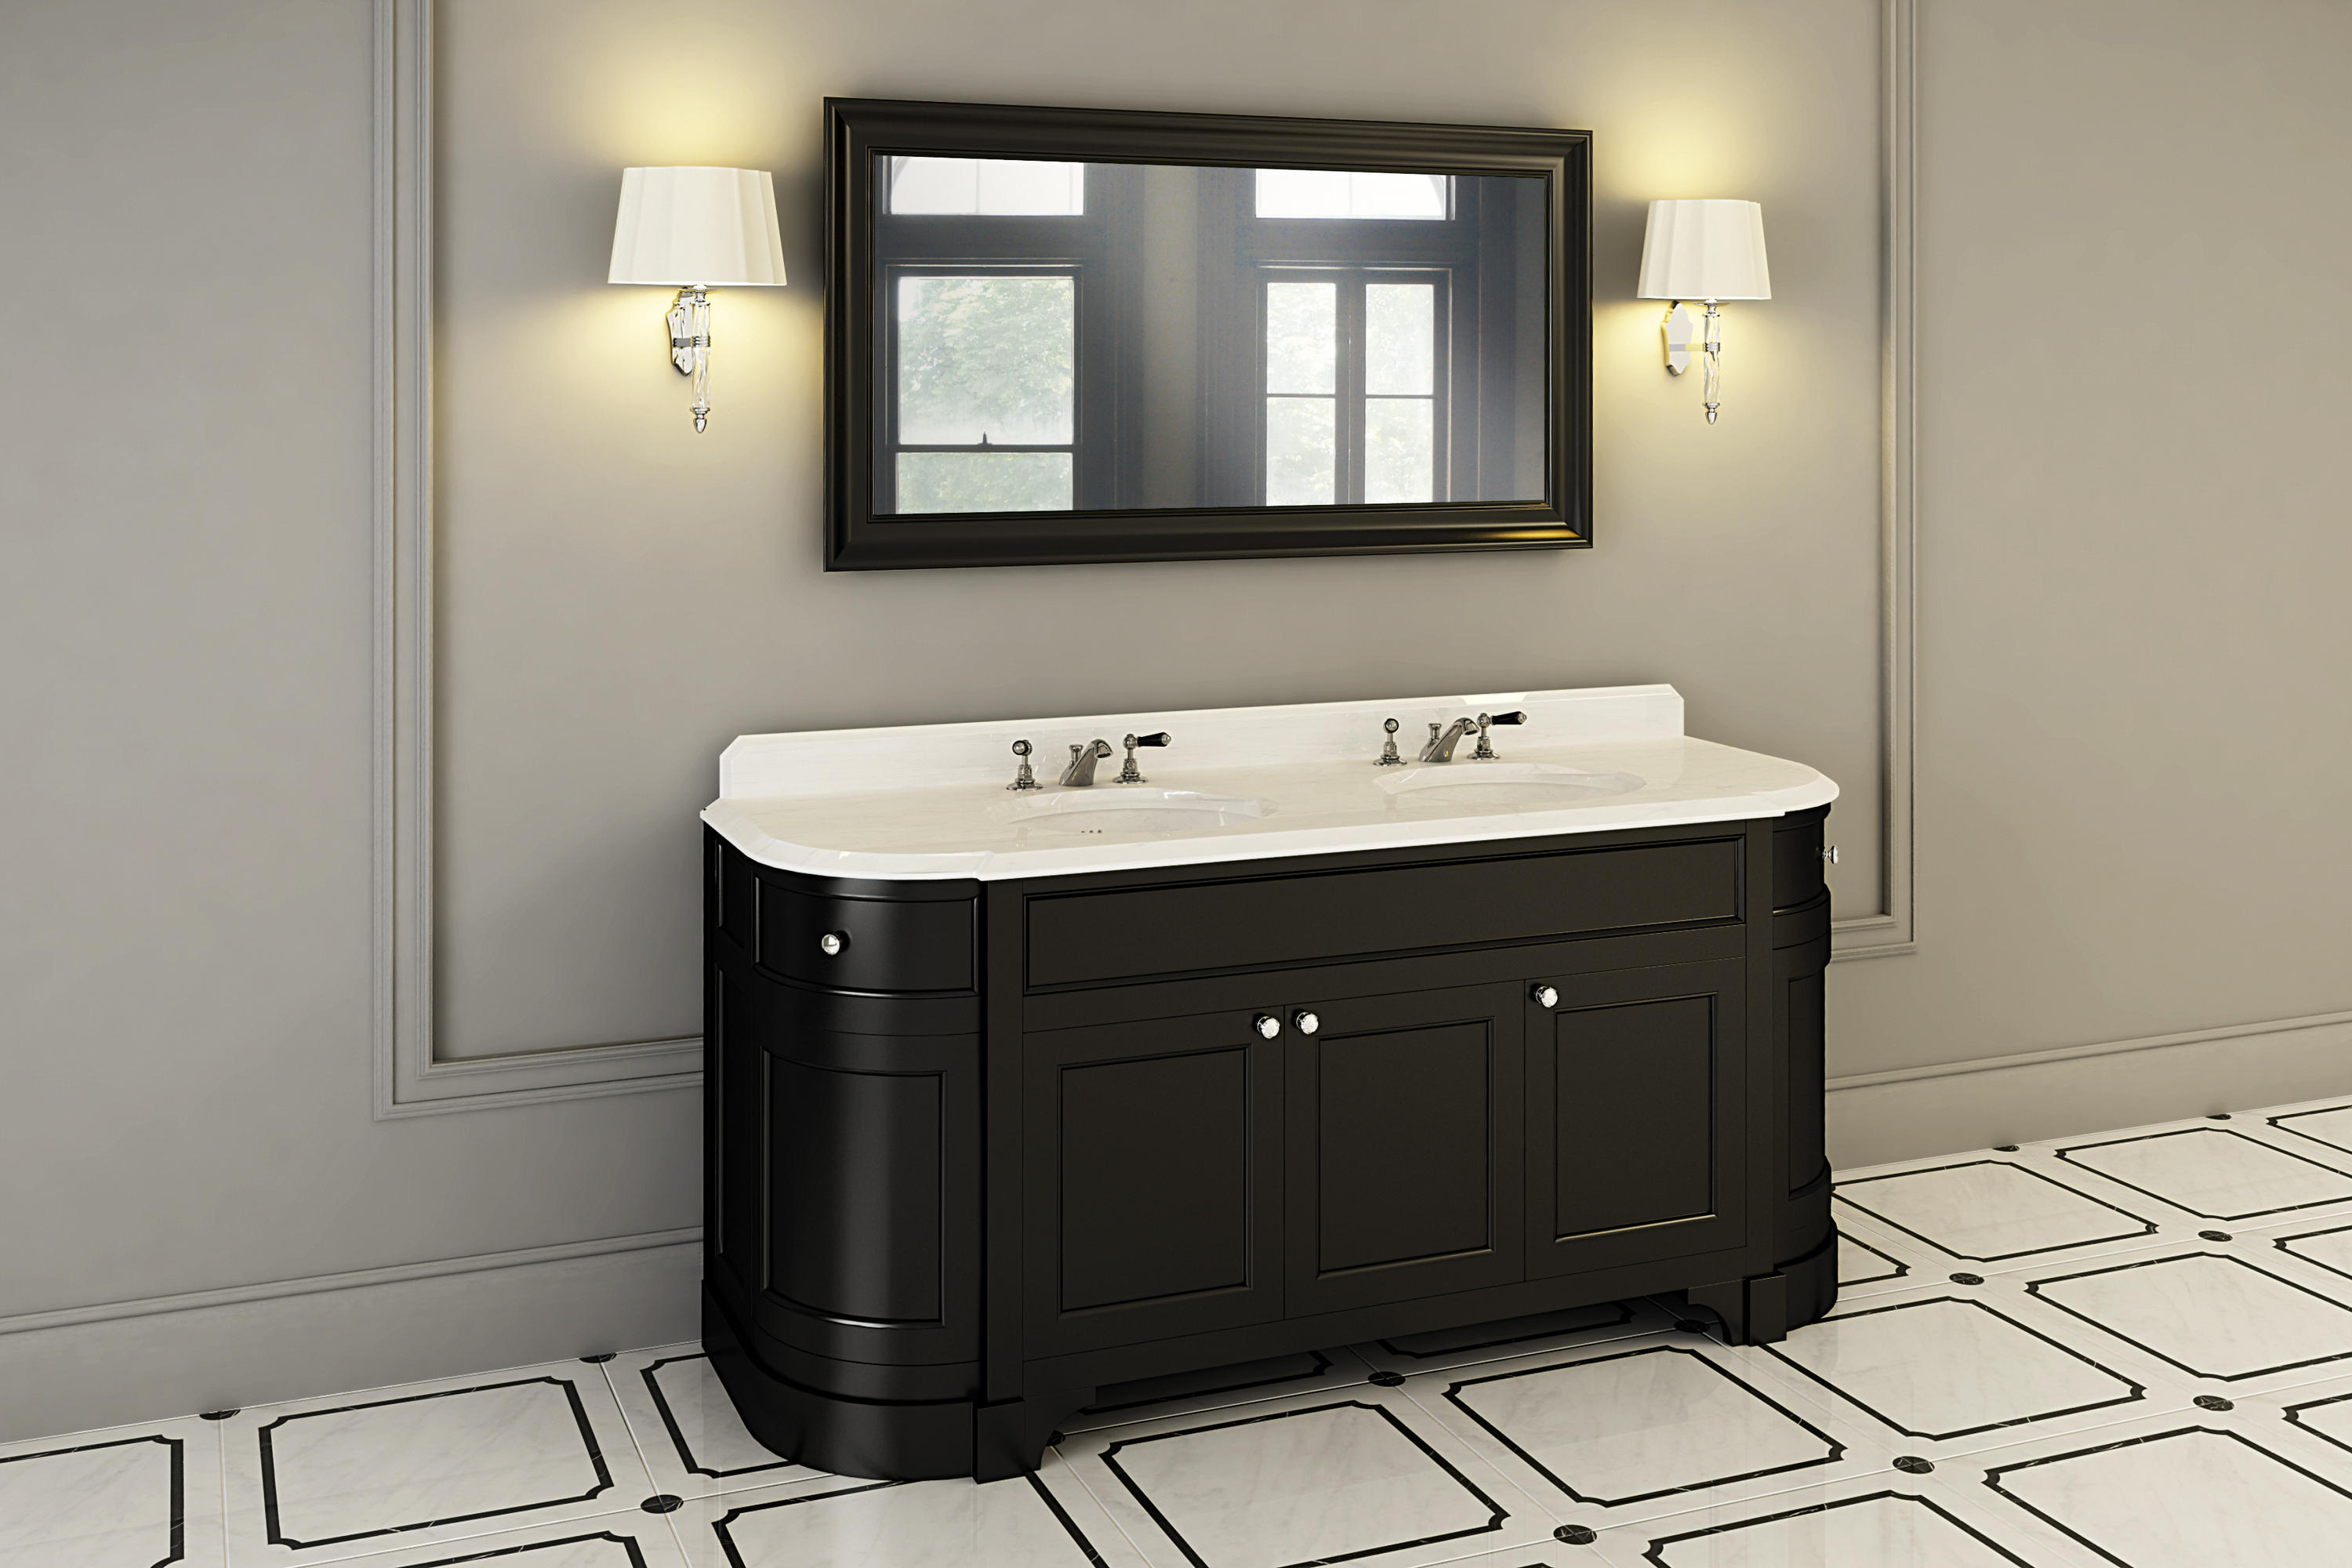 Arredo Bagno Devon E Devon.Mobile Portalavabo Double Season Architonic